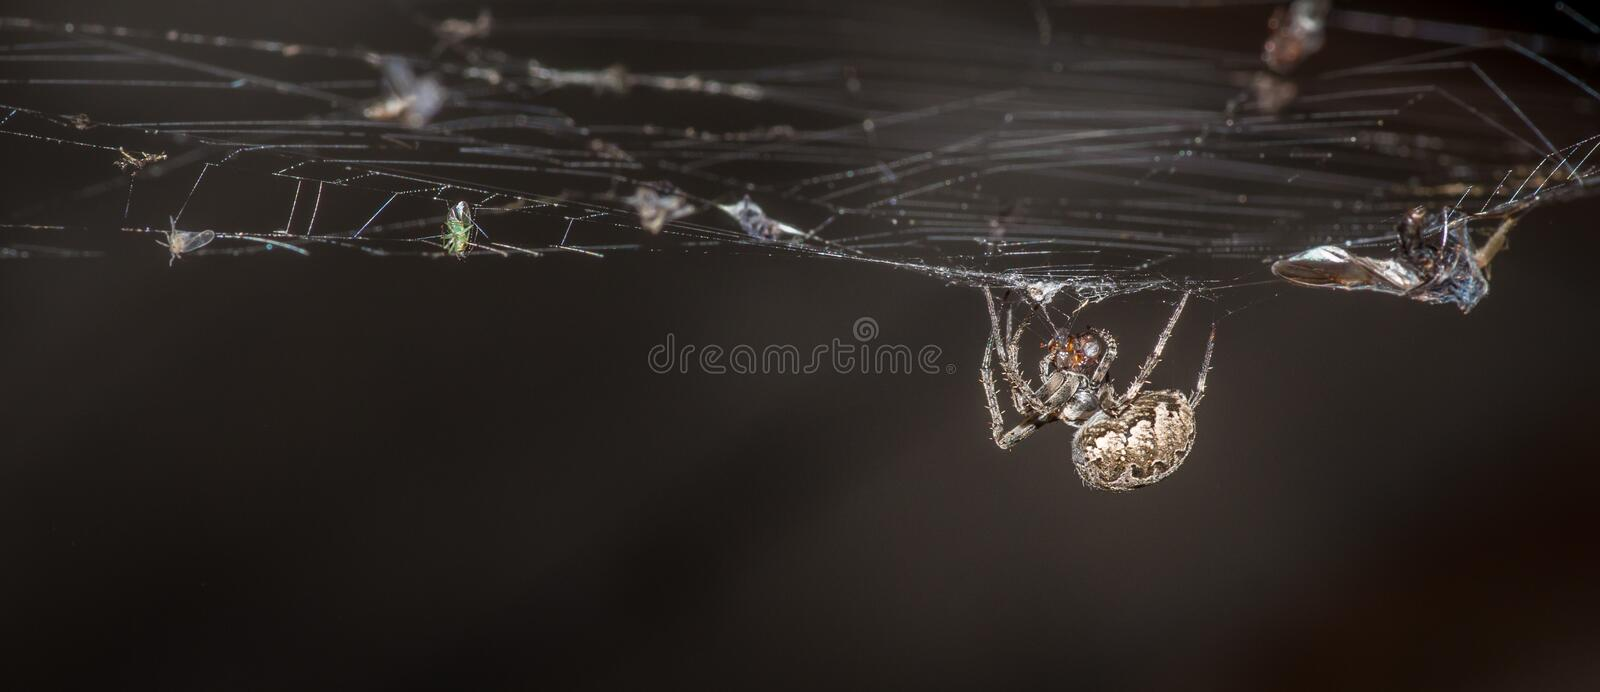 Dinner in the web royalty free stock photo